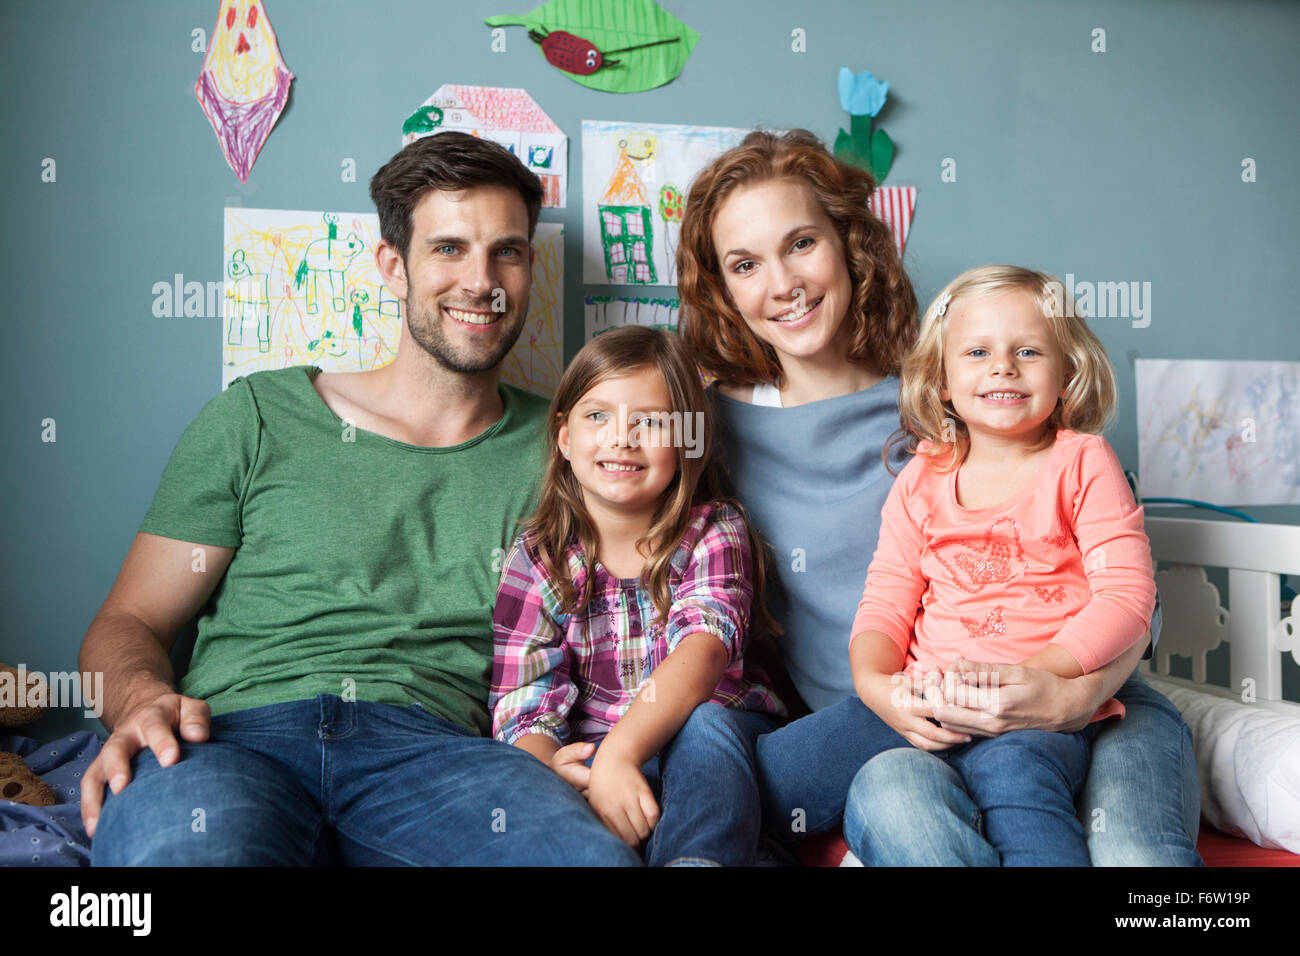 Family picture of couple with her little daughters sitting together on bed in children's room Stock Photo